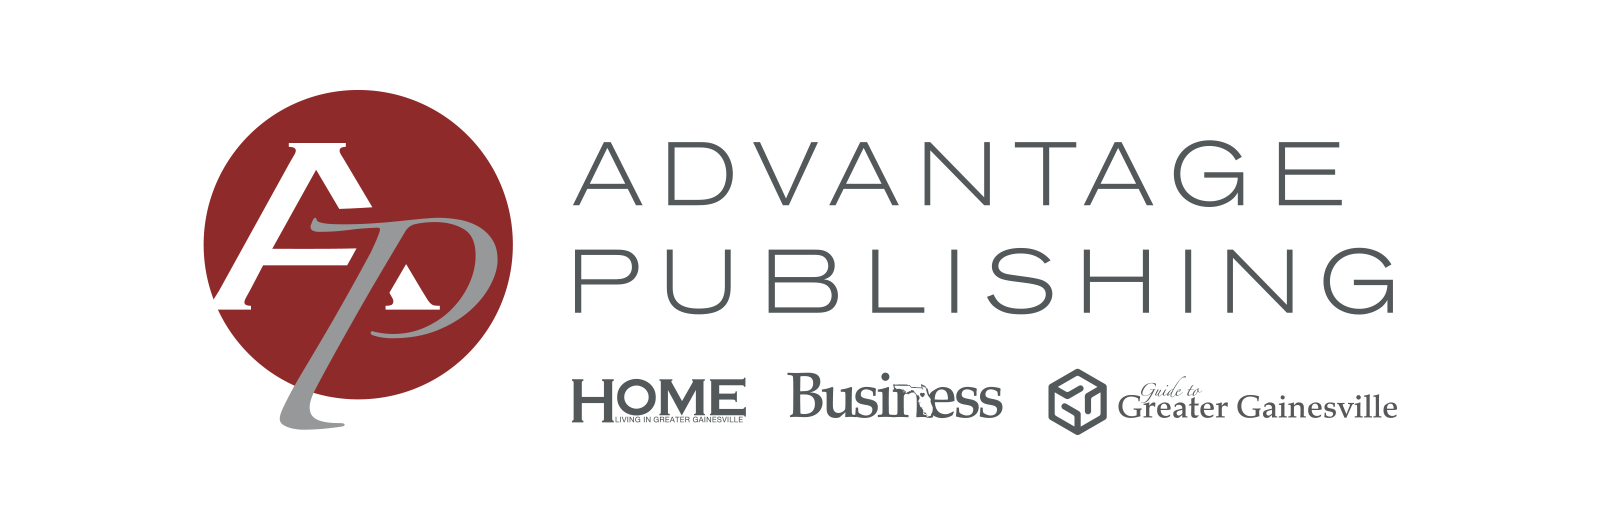 Advantage Publishing